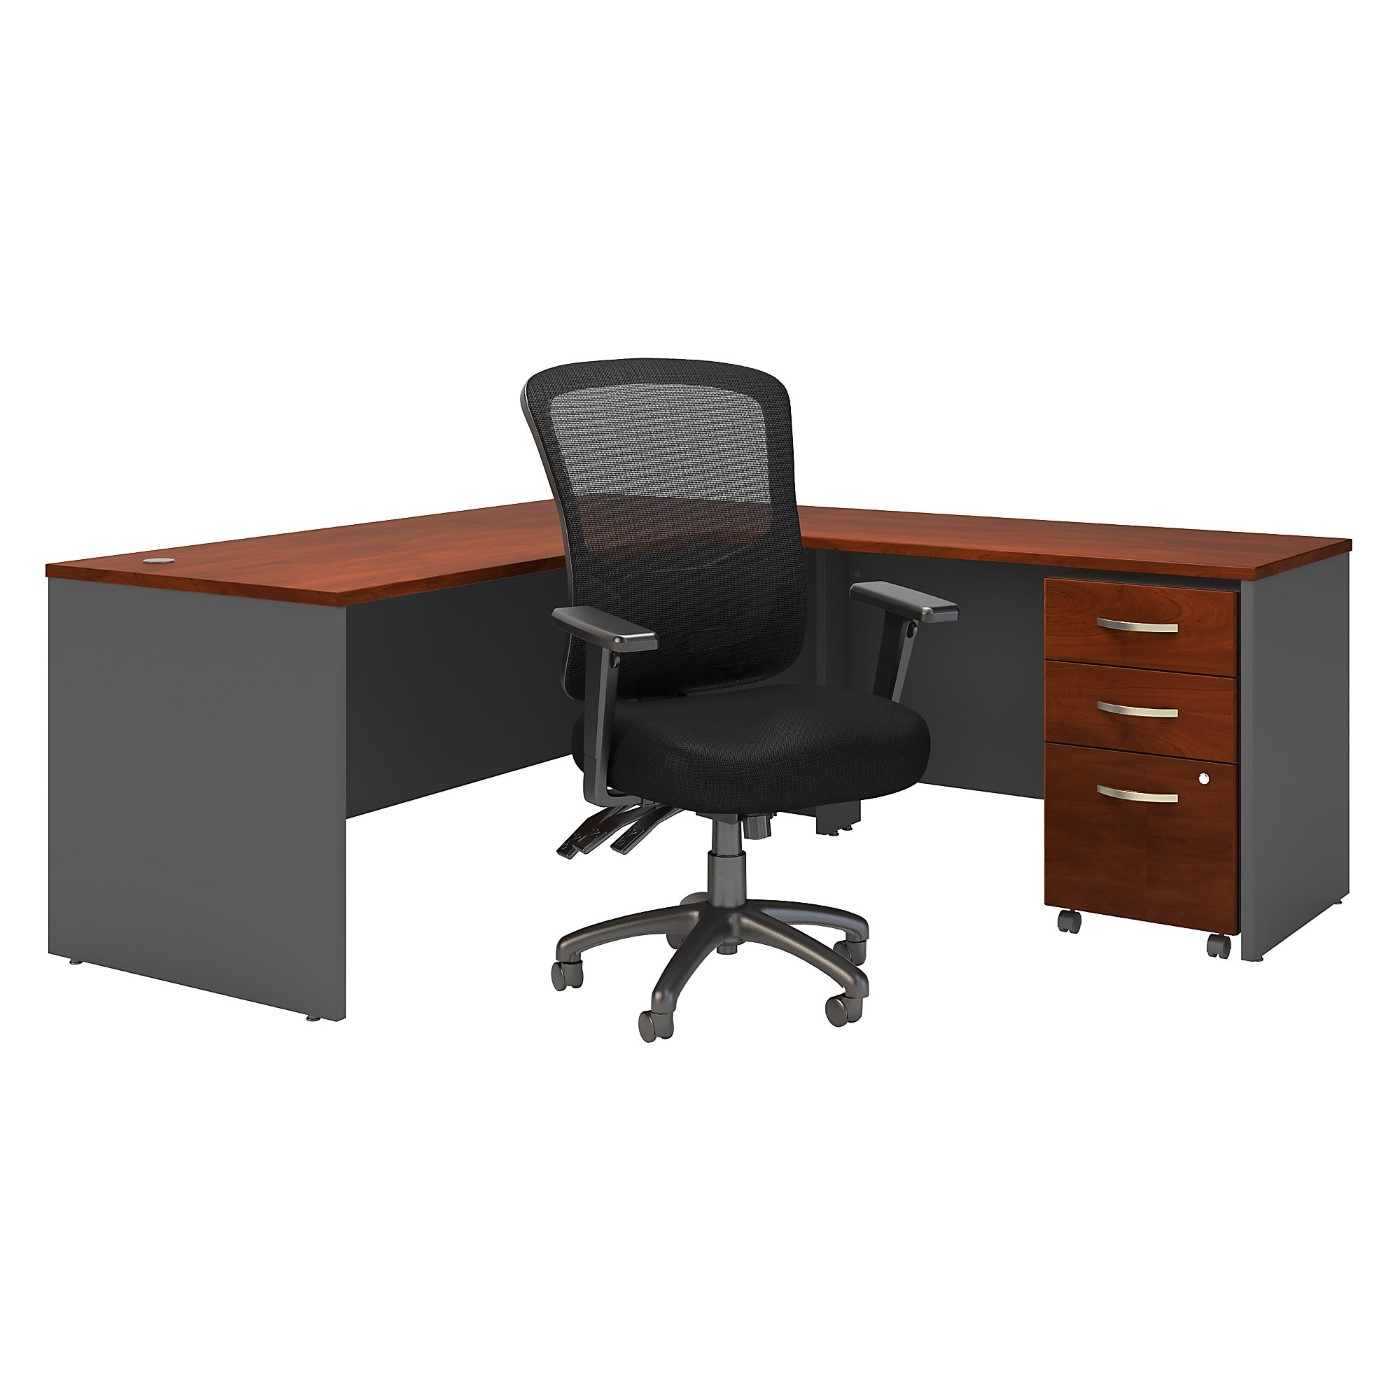 BUSH BUSINESS FURNITURE SERIES C 72W L SHAPED DESK WITH MOBILE FILE CABINET AND HIGH BACK MULTIFUNCTION OFFICE CHAIR. FREE SHIPPING SALE DEDUCT 10% MORE ENTER '10percent' IN COUPON CODE BOX WHILE CHECKING OUT.